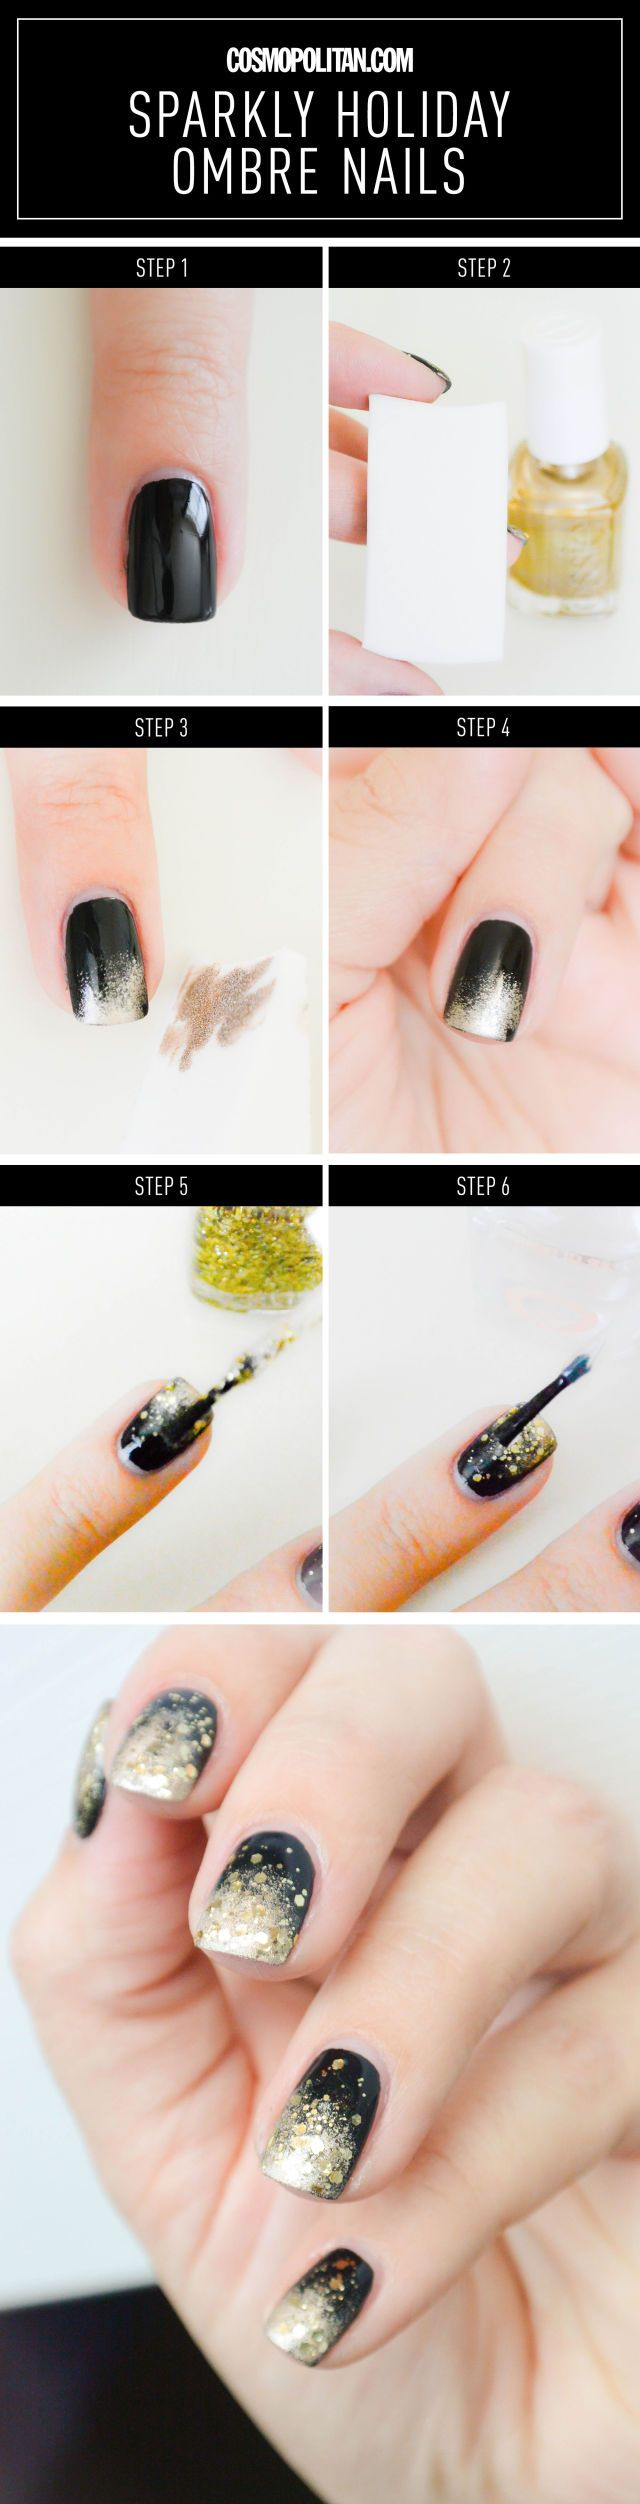 Nail Art How-To: Sparkly Black and Gold Ombré Mani – Cosmopolitan.com